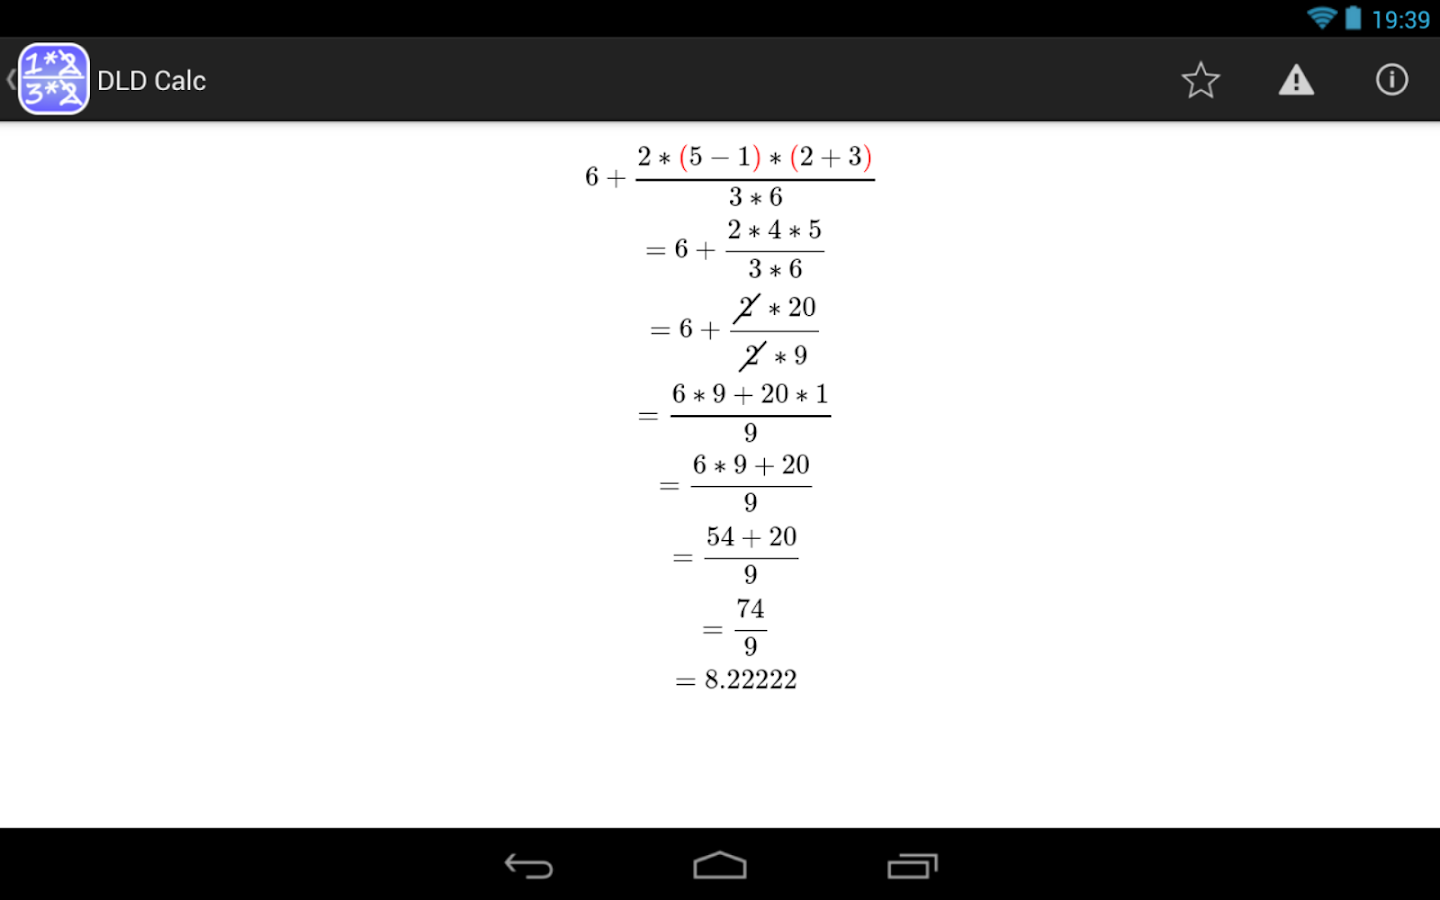 DLD Calc - Math Calculator- screenshot